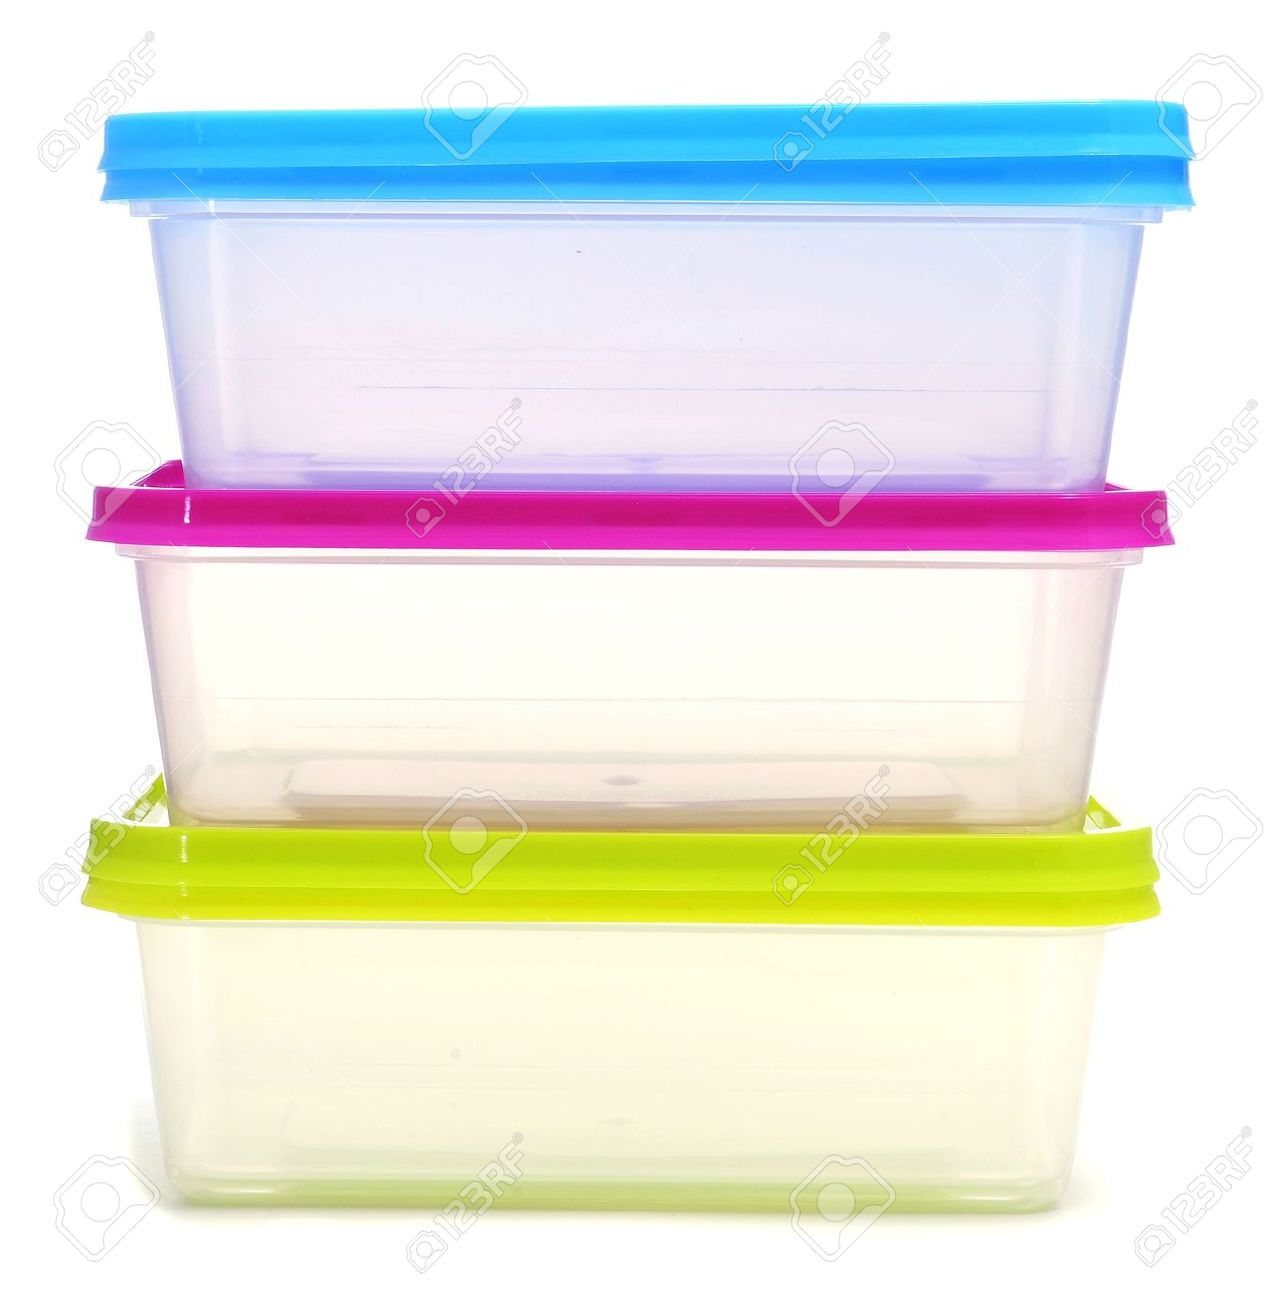 5028c0fa860 a pile of plastic containers on a white background Stock Photo - 9482192